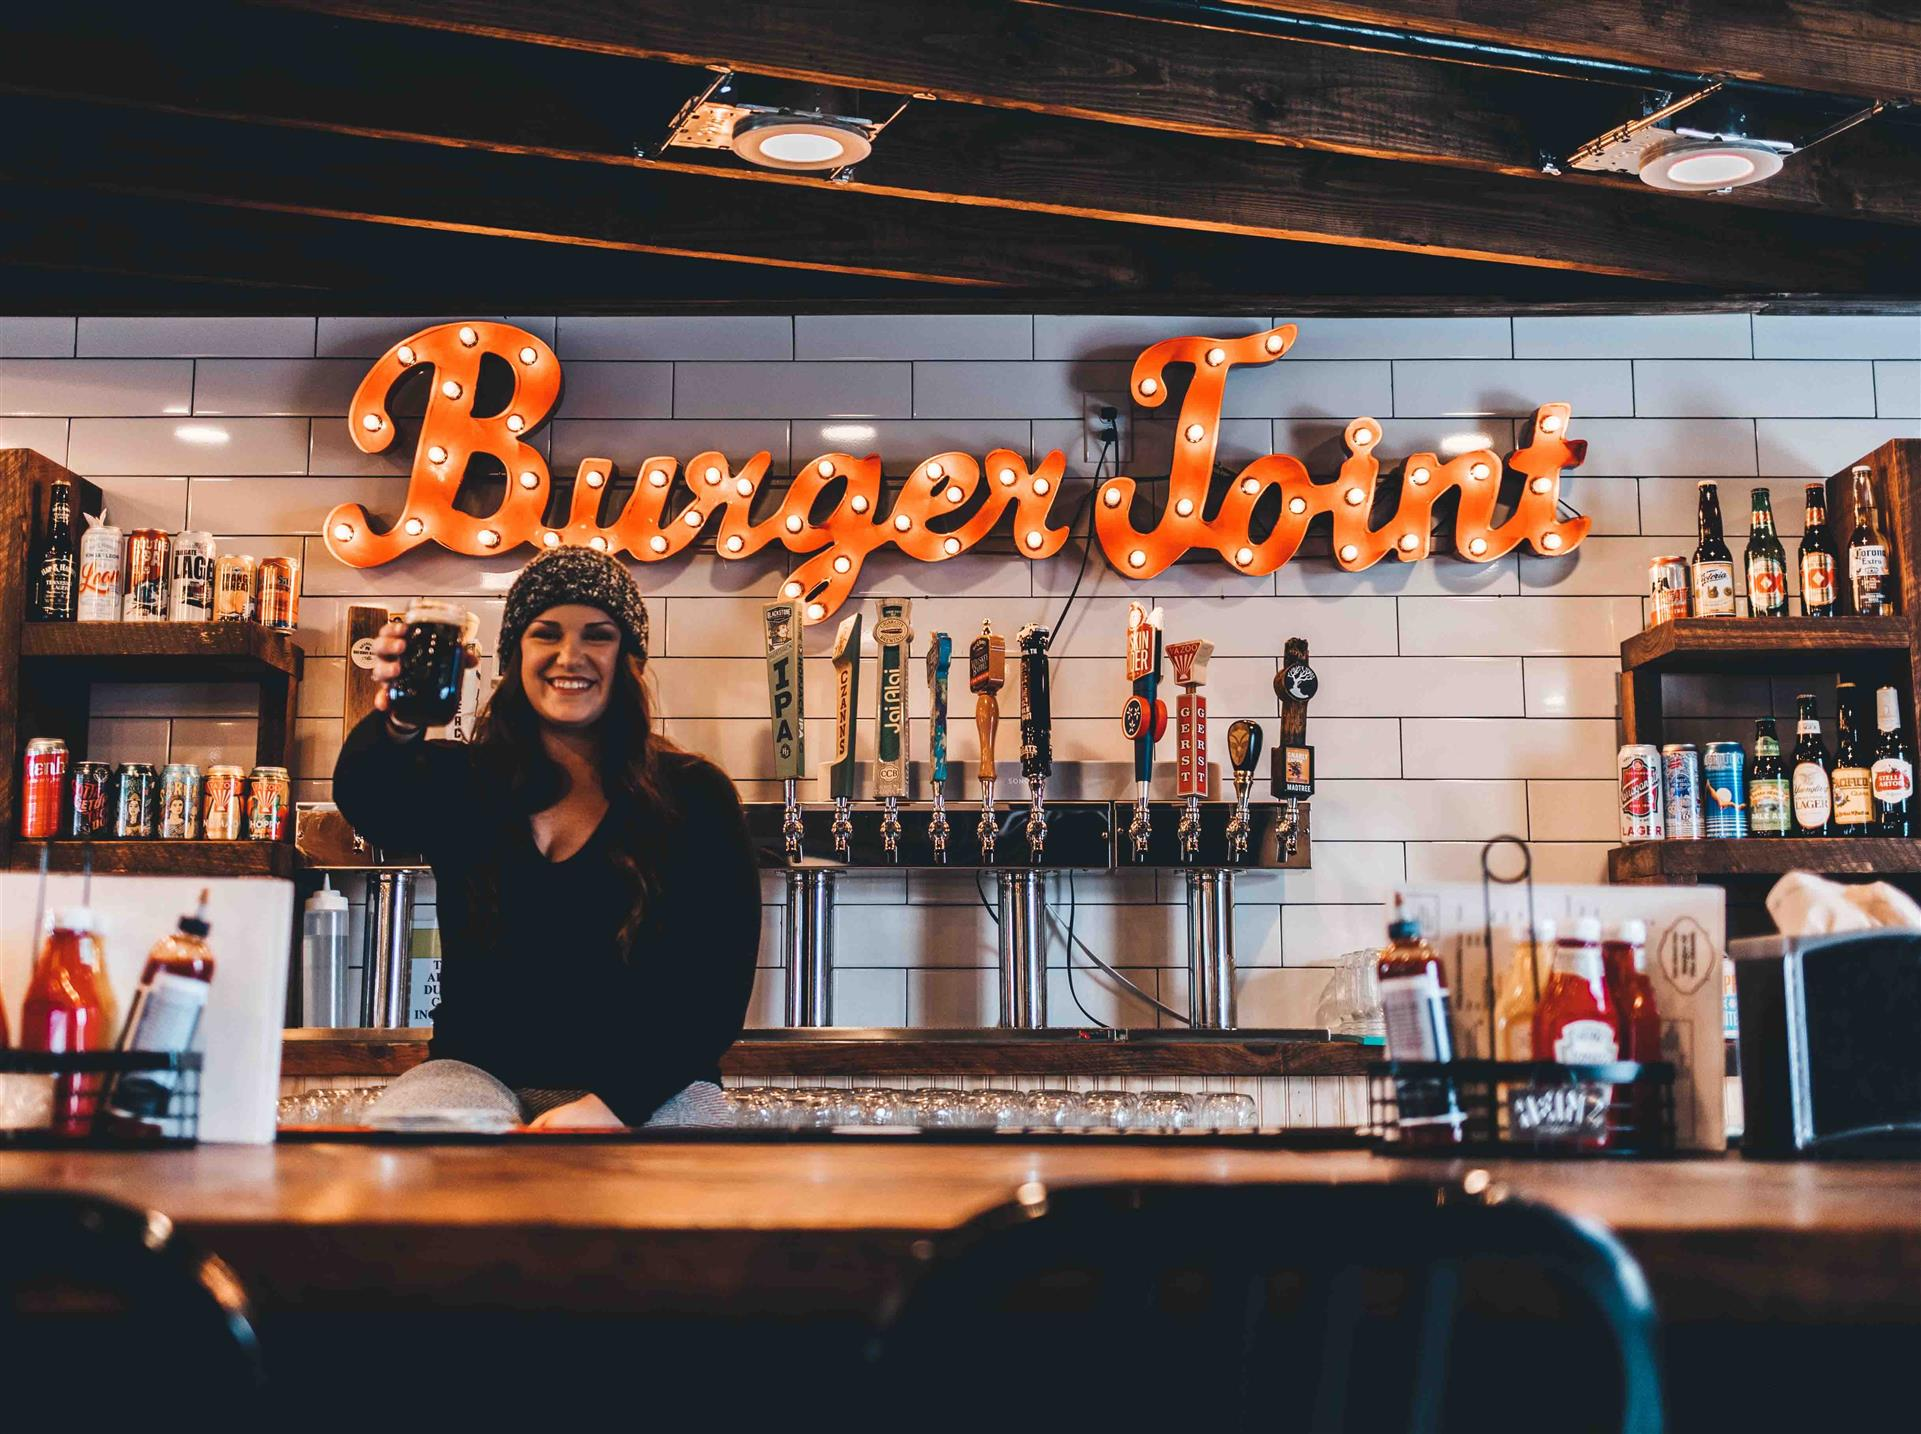 bartender behind the bar raising a drink with view of beer taps behind her and a Burger Joint sign on the wall